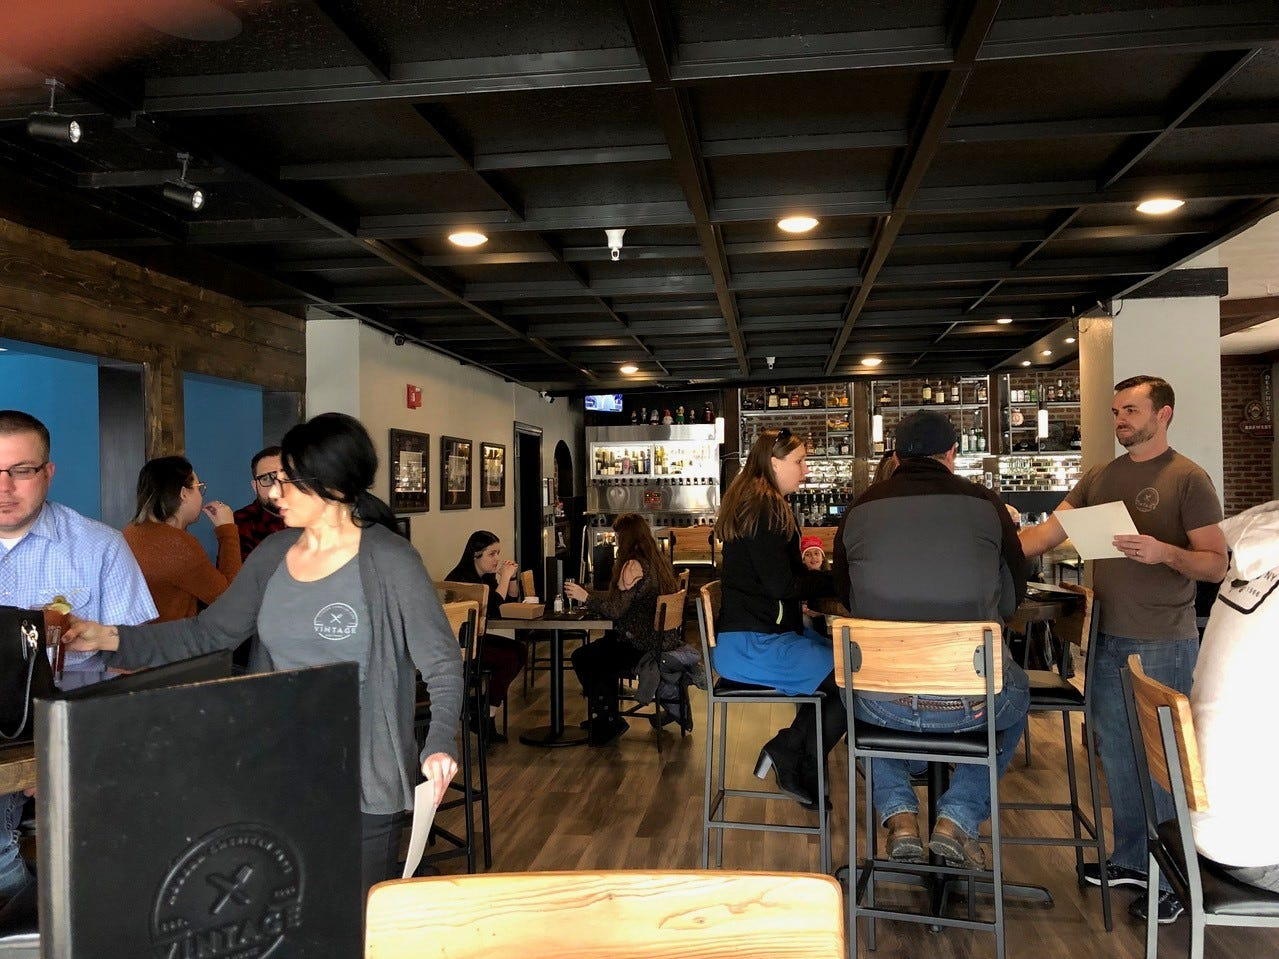 In February 2019, diners are seen at the Sunday brunch at the Vintage Public House in downtown Redding.